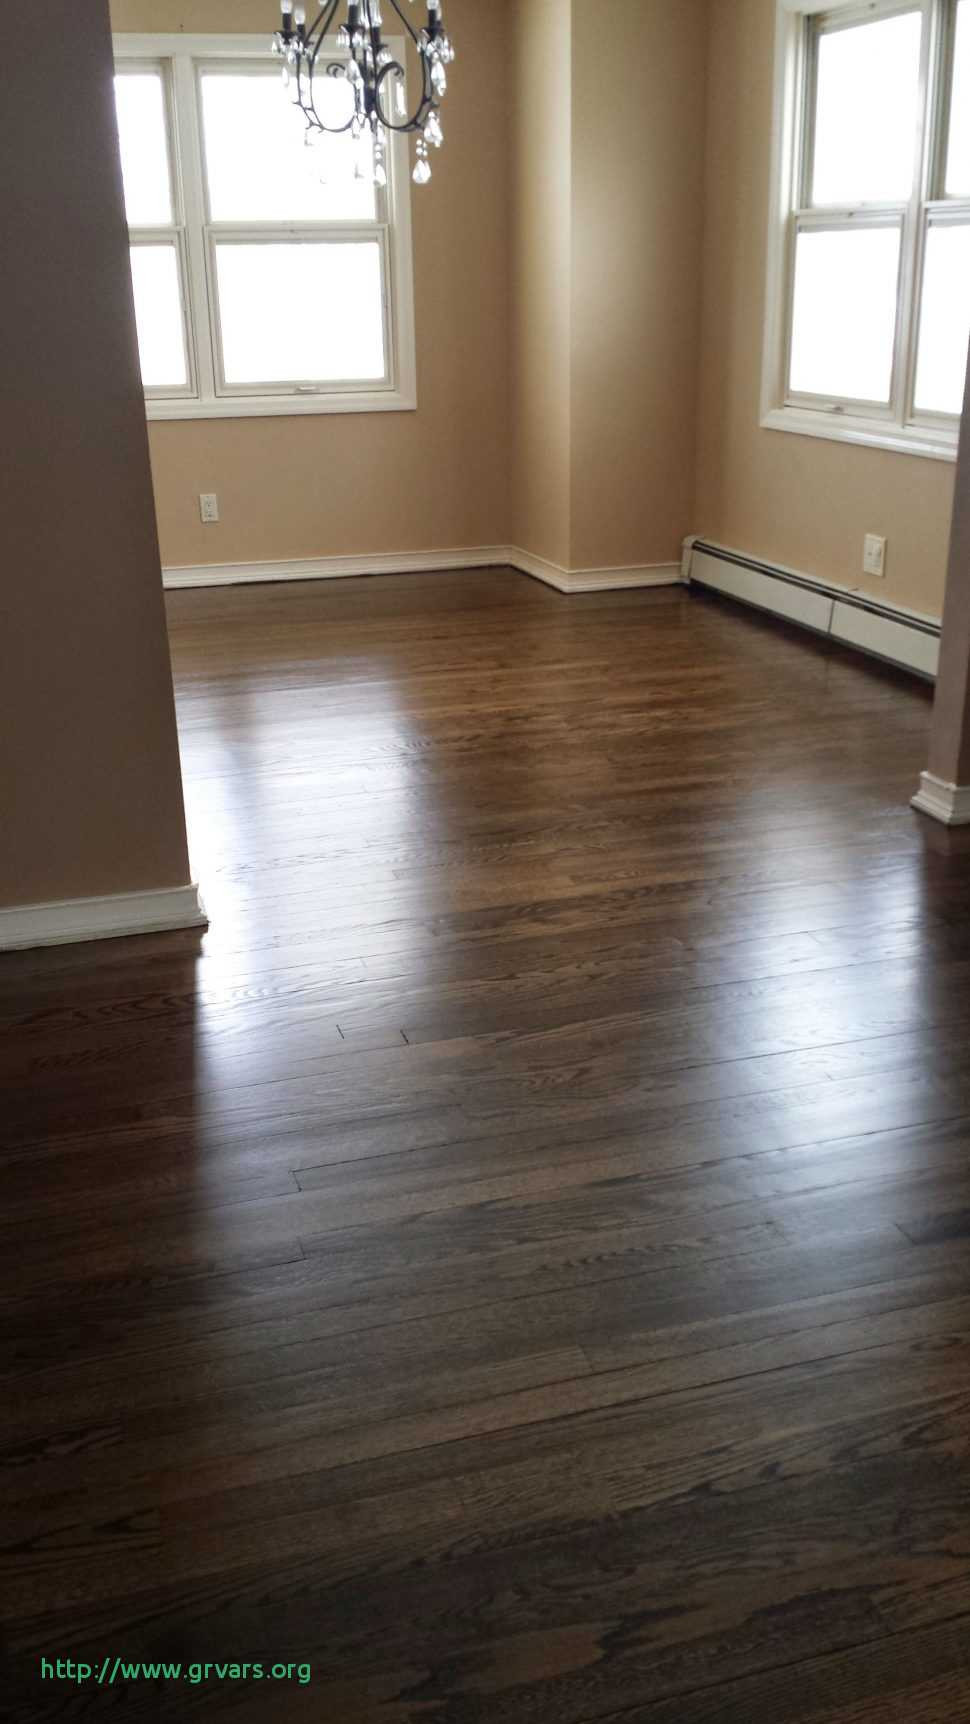 sanding hardwood floors with an orbital sander of 15 nouveau how to restore hardwood floors yourself ideas blog with how to restore hardwood floors yourself nouveau amusing refinishingod floors diy network refinish parquet without